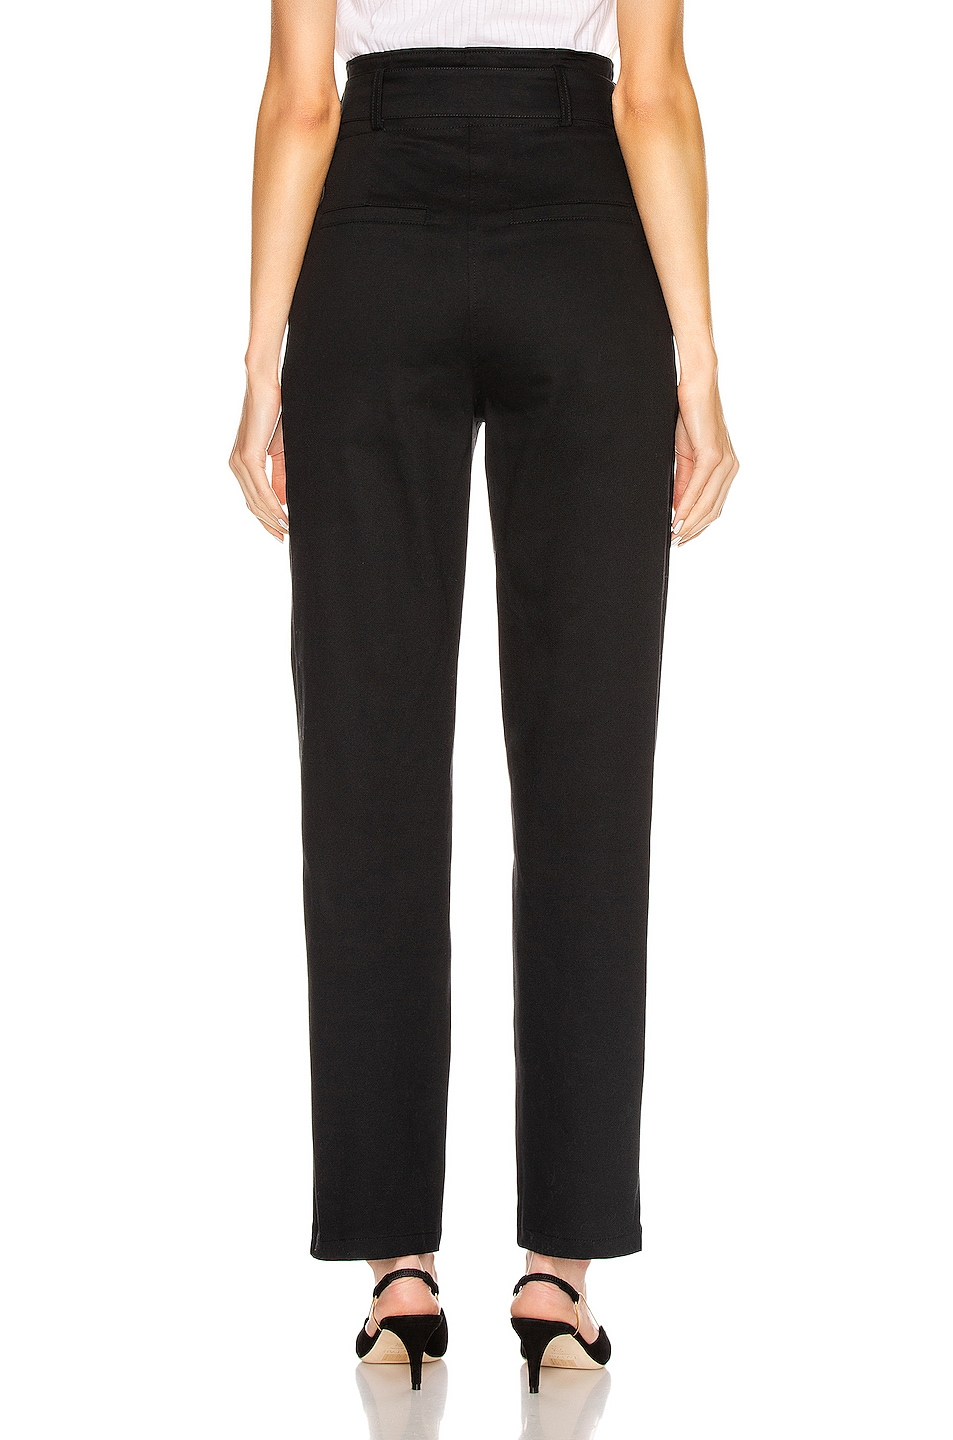 Image 4 of The Range Structured Twill Belted Paperbag Pants in Black